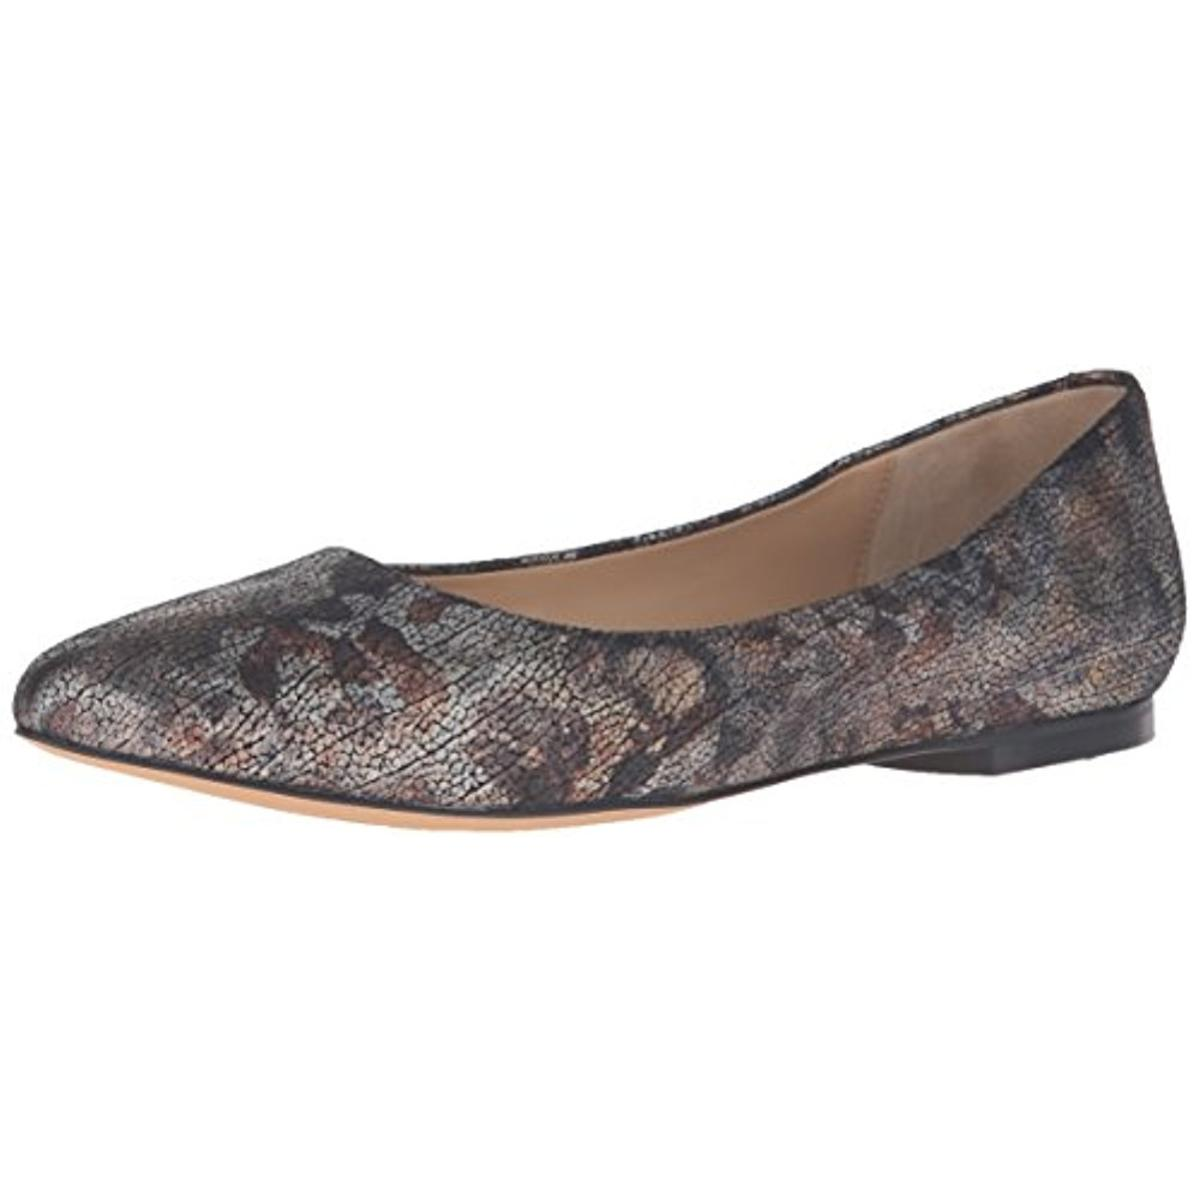 Women's Trotters Estee Economical, stylish, and eye-catching shoes